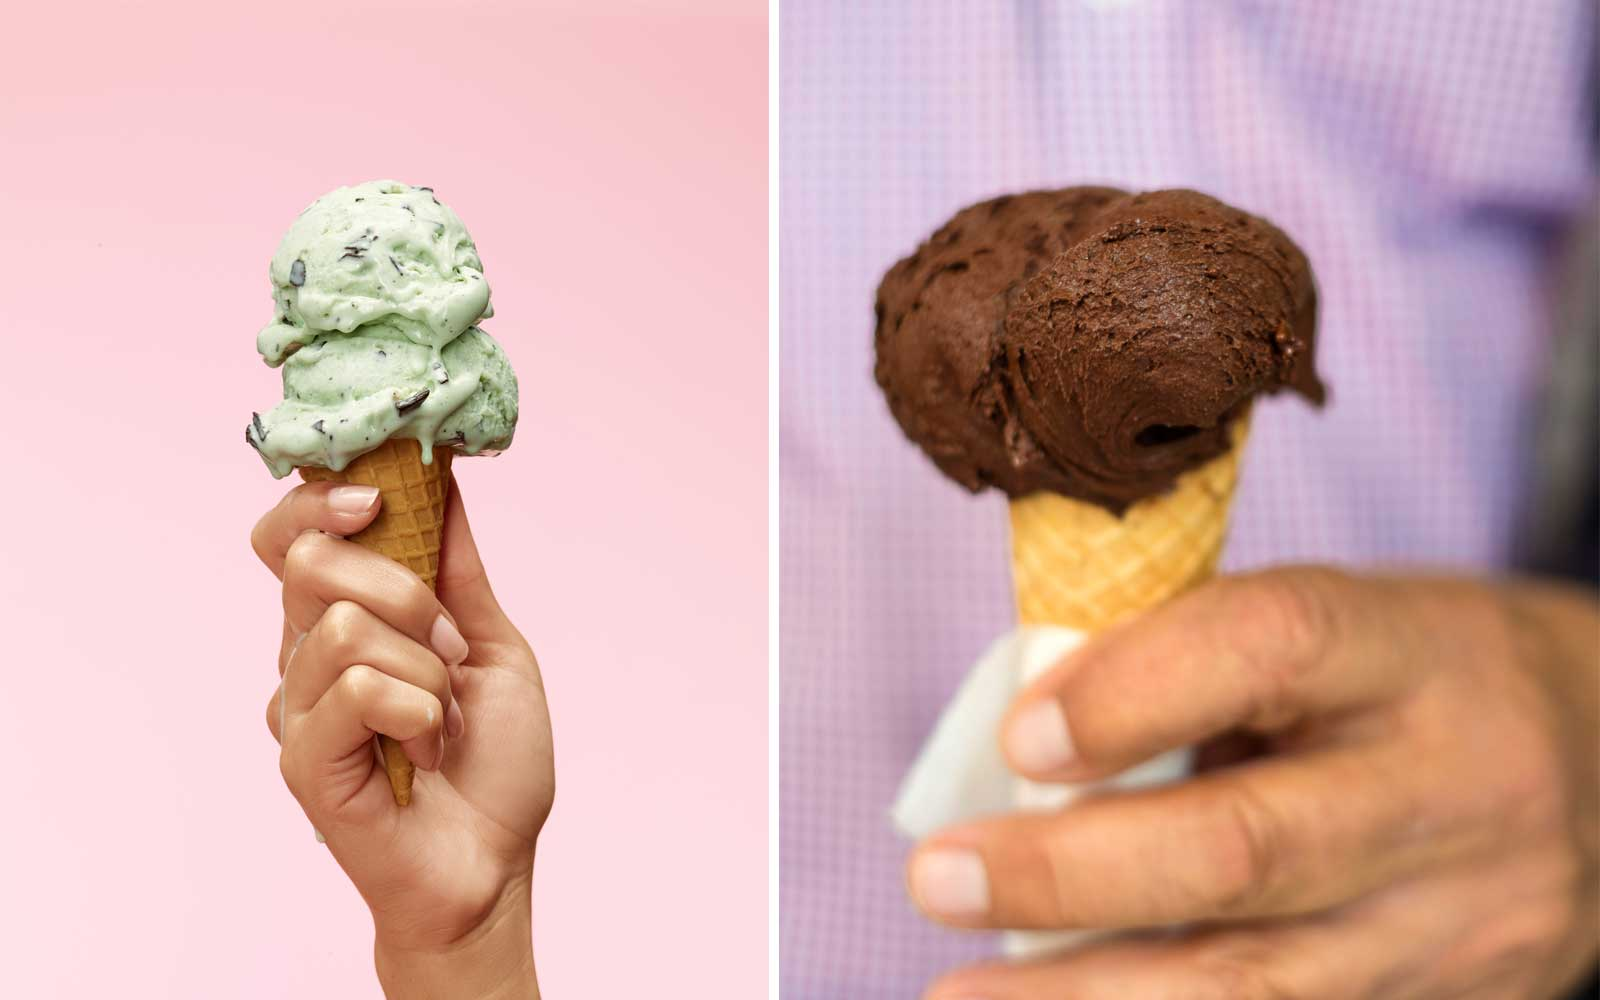 The real difference between ice cream and gelato